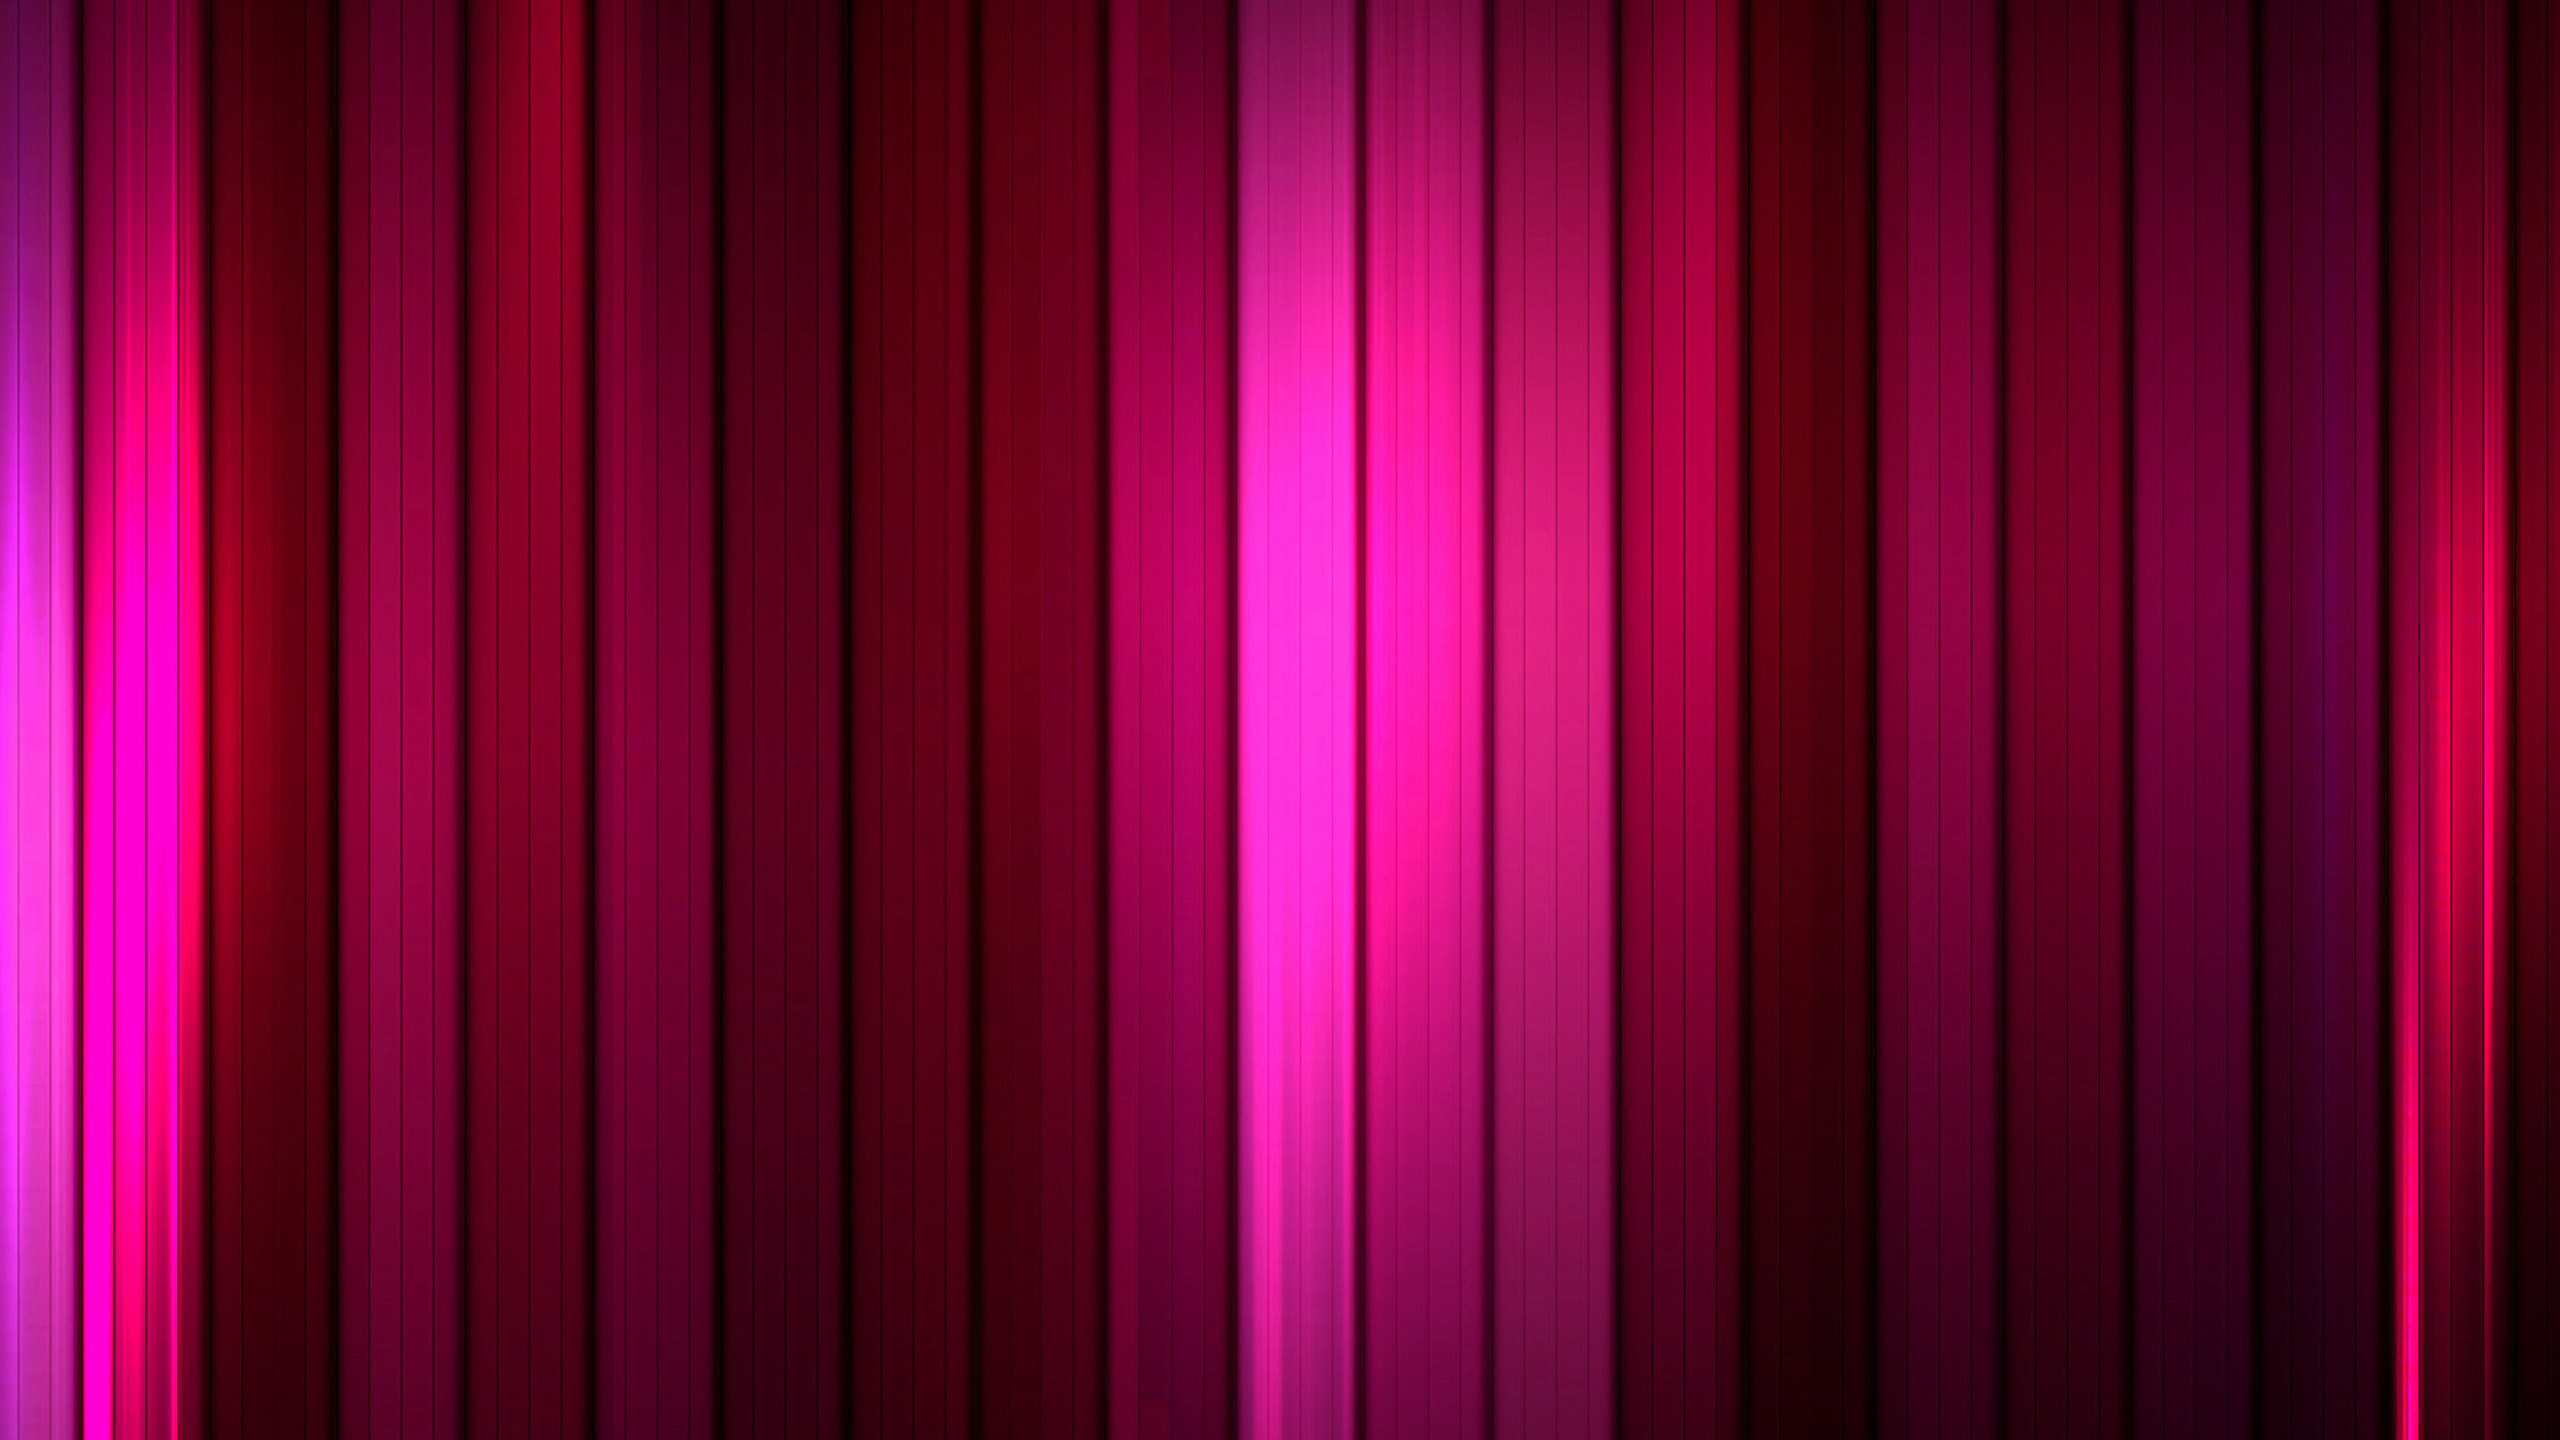 Pink And Blue Striped Wallpaper 2989 Wallpaper: Blue And Pink Wallpapers (79+ Images